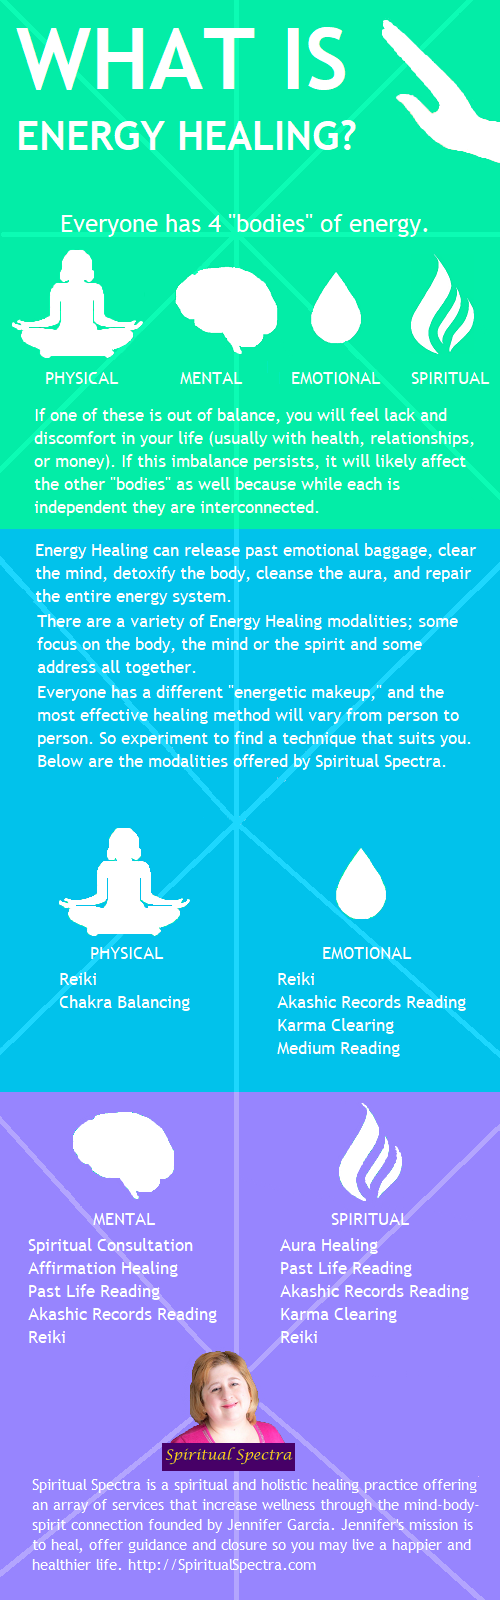 Image describing Energy Healing